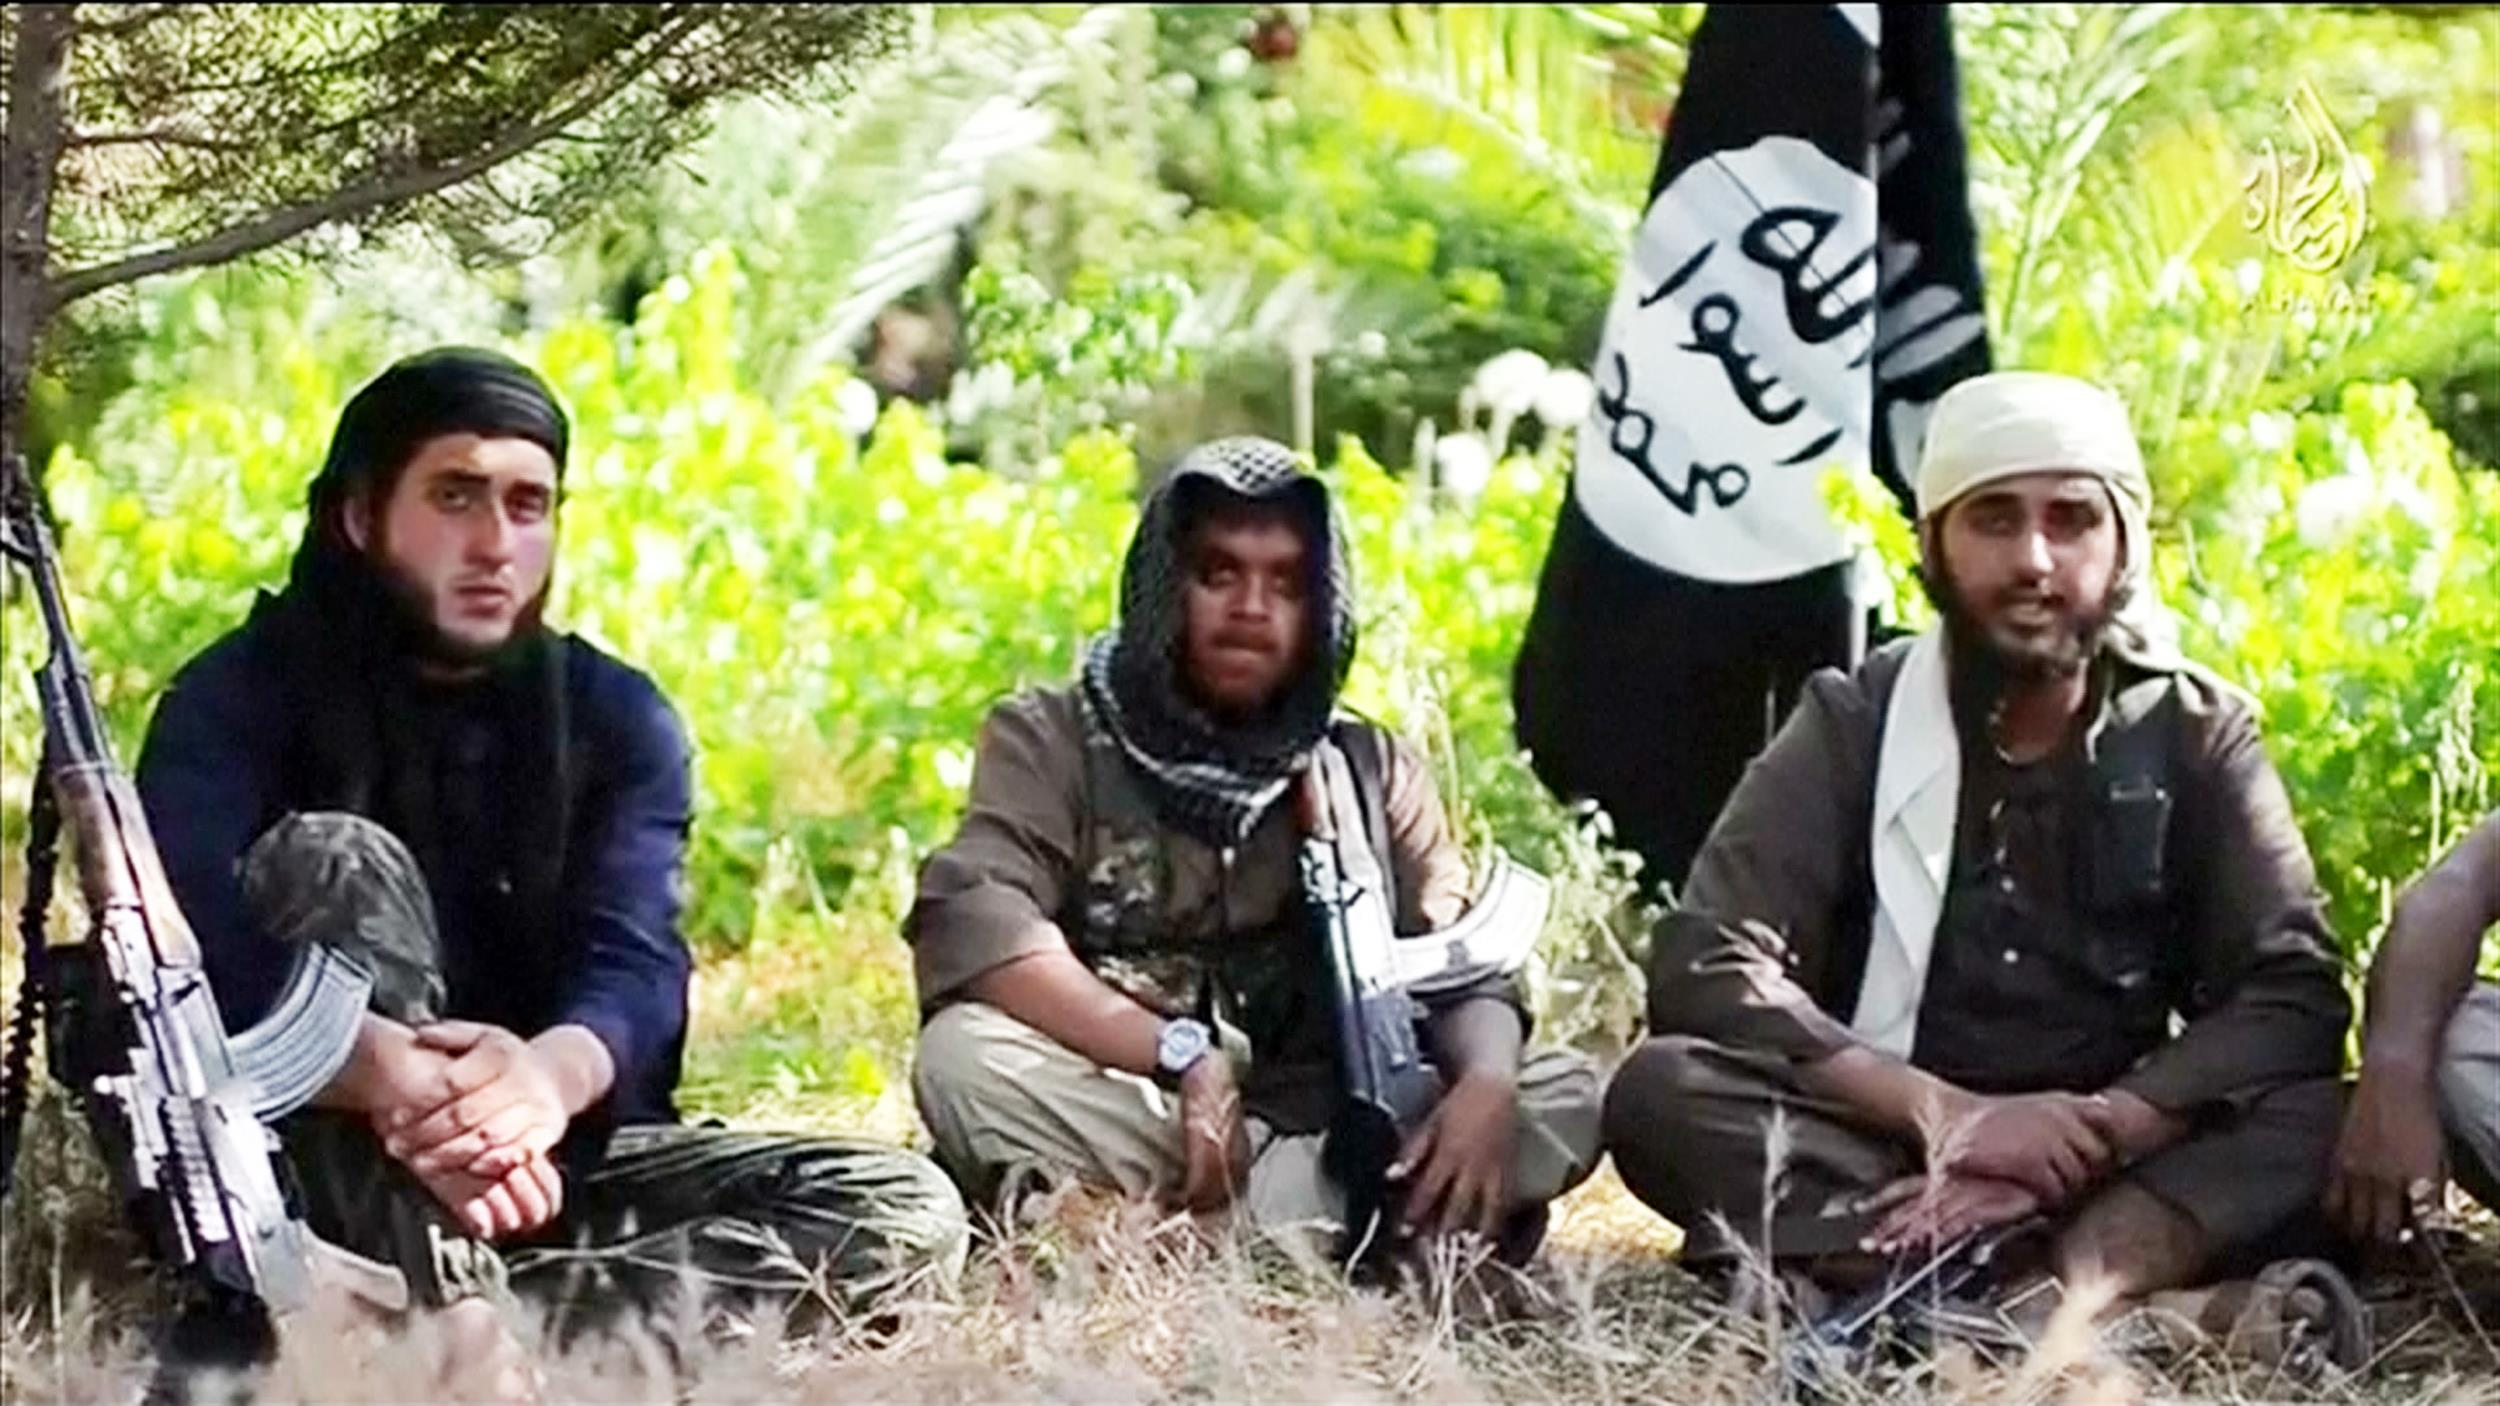 Image: A video shows five rebels, reportedly from Britain and Australia, sitting and holding rifles, with the al-Qaida's black flag flying behind them. NBC News is unable to independently verify the video.